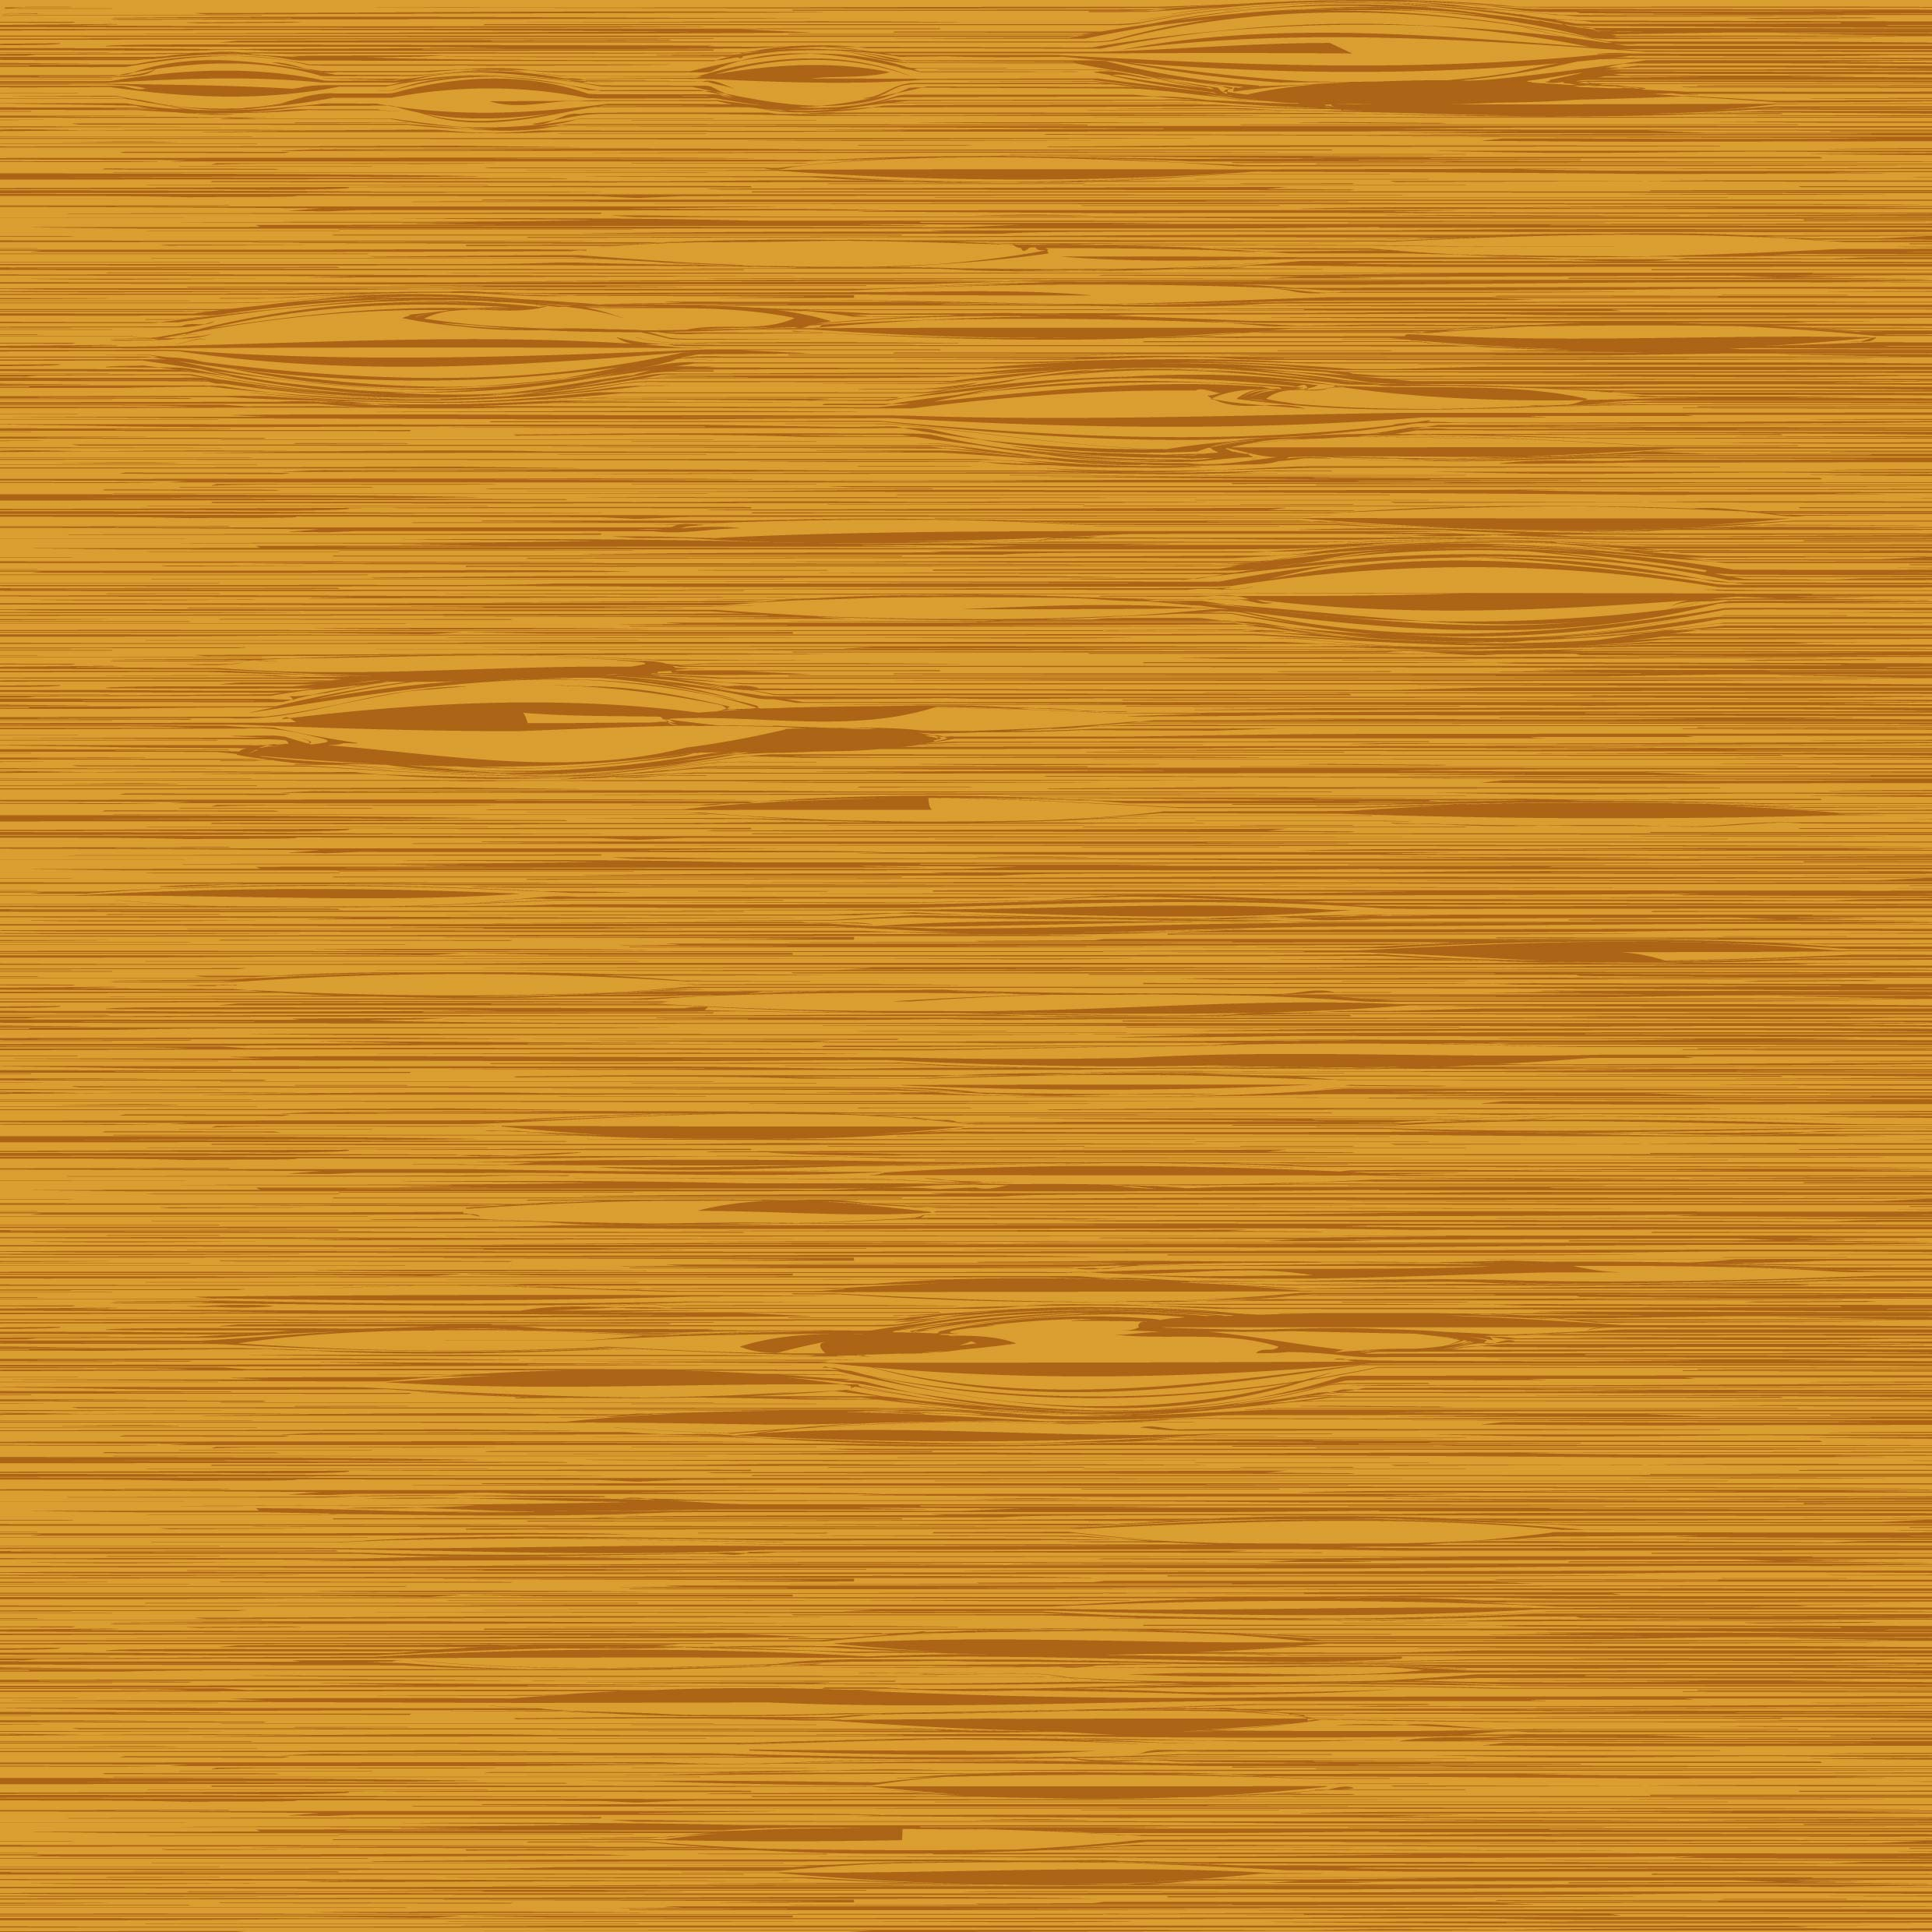 Woodgrain Background Download Free Vectors Clipart